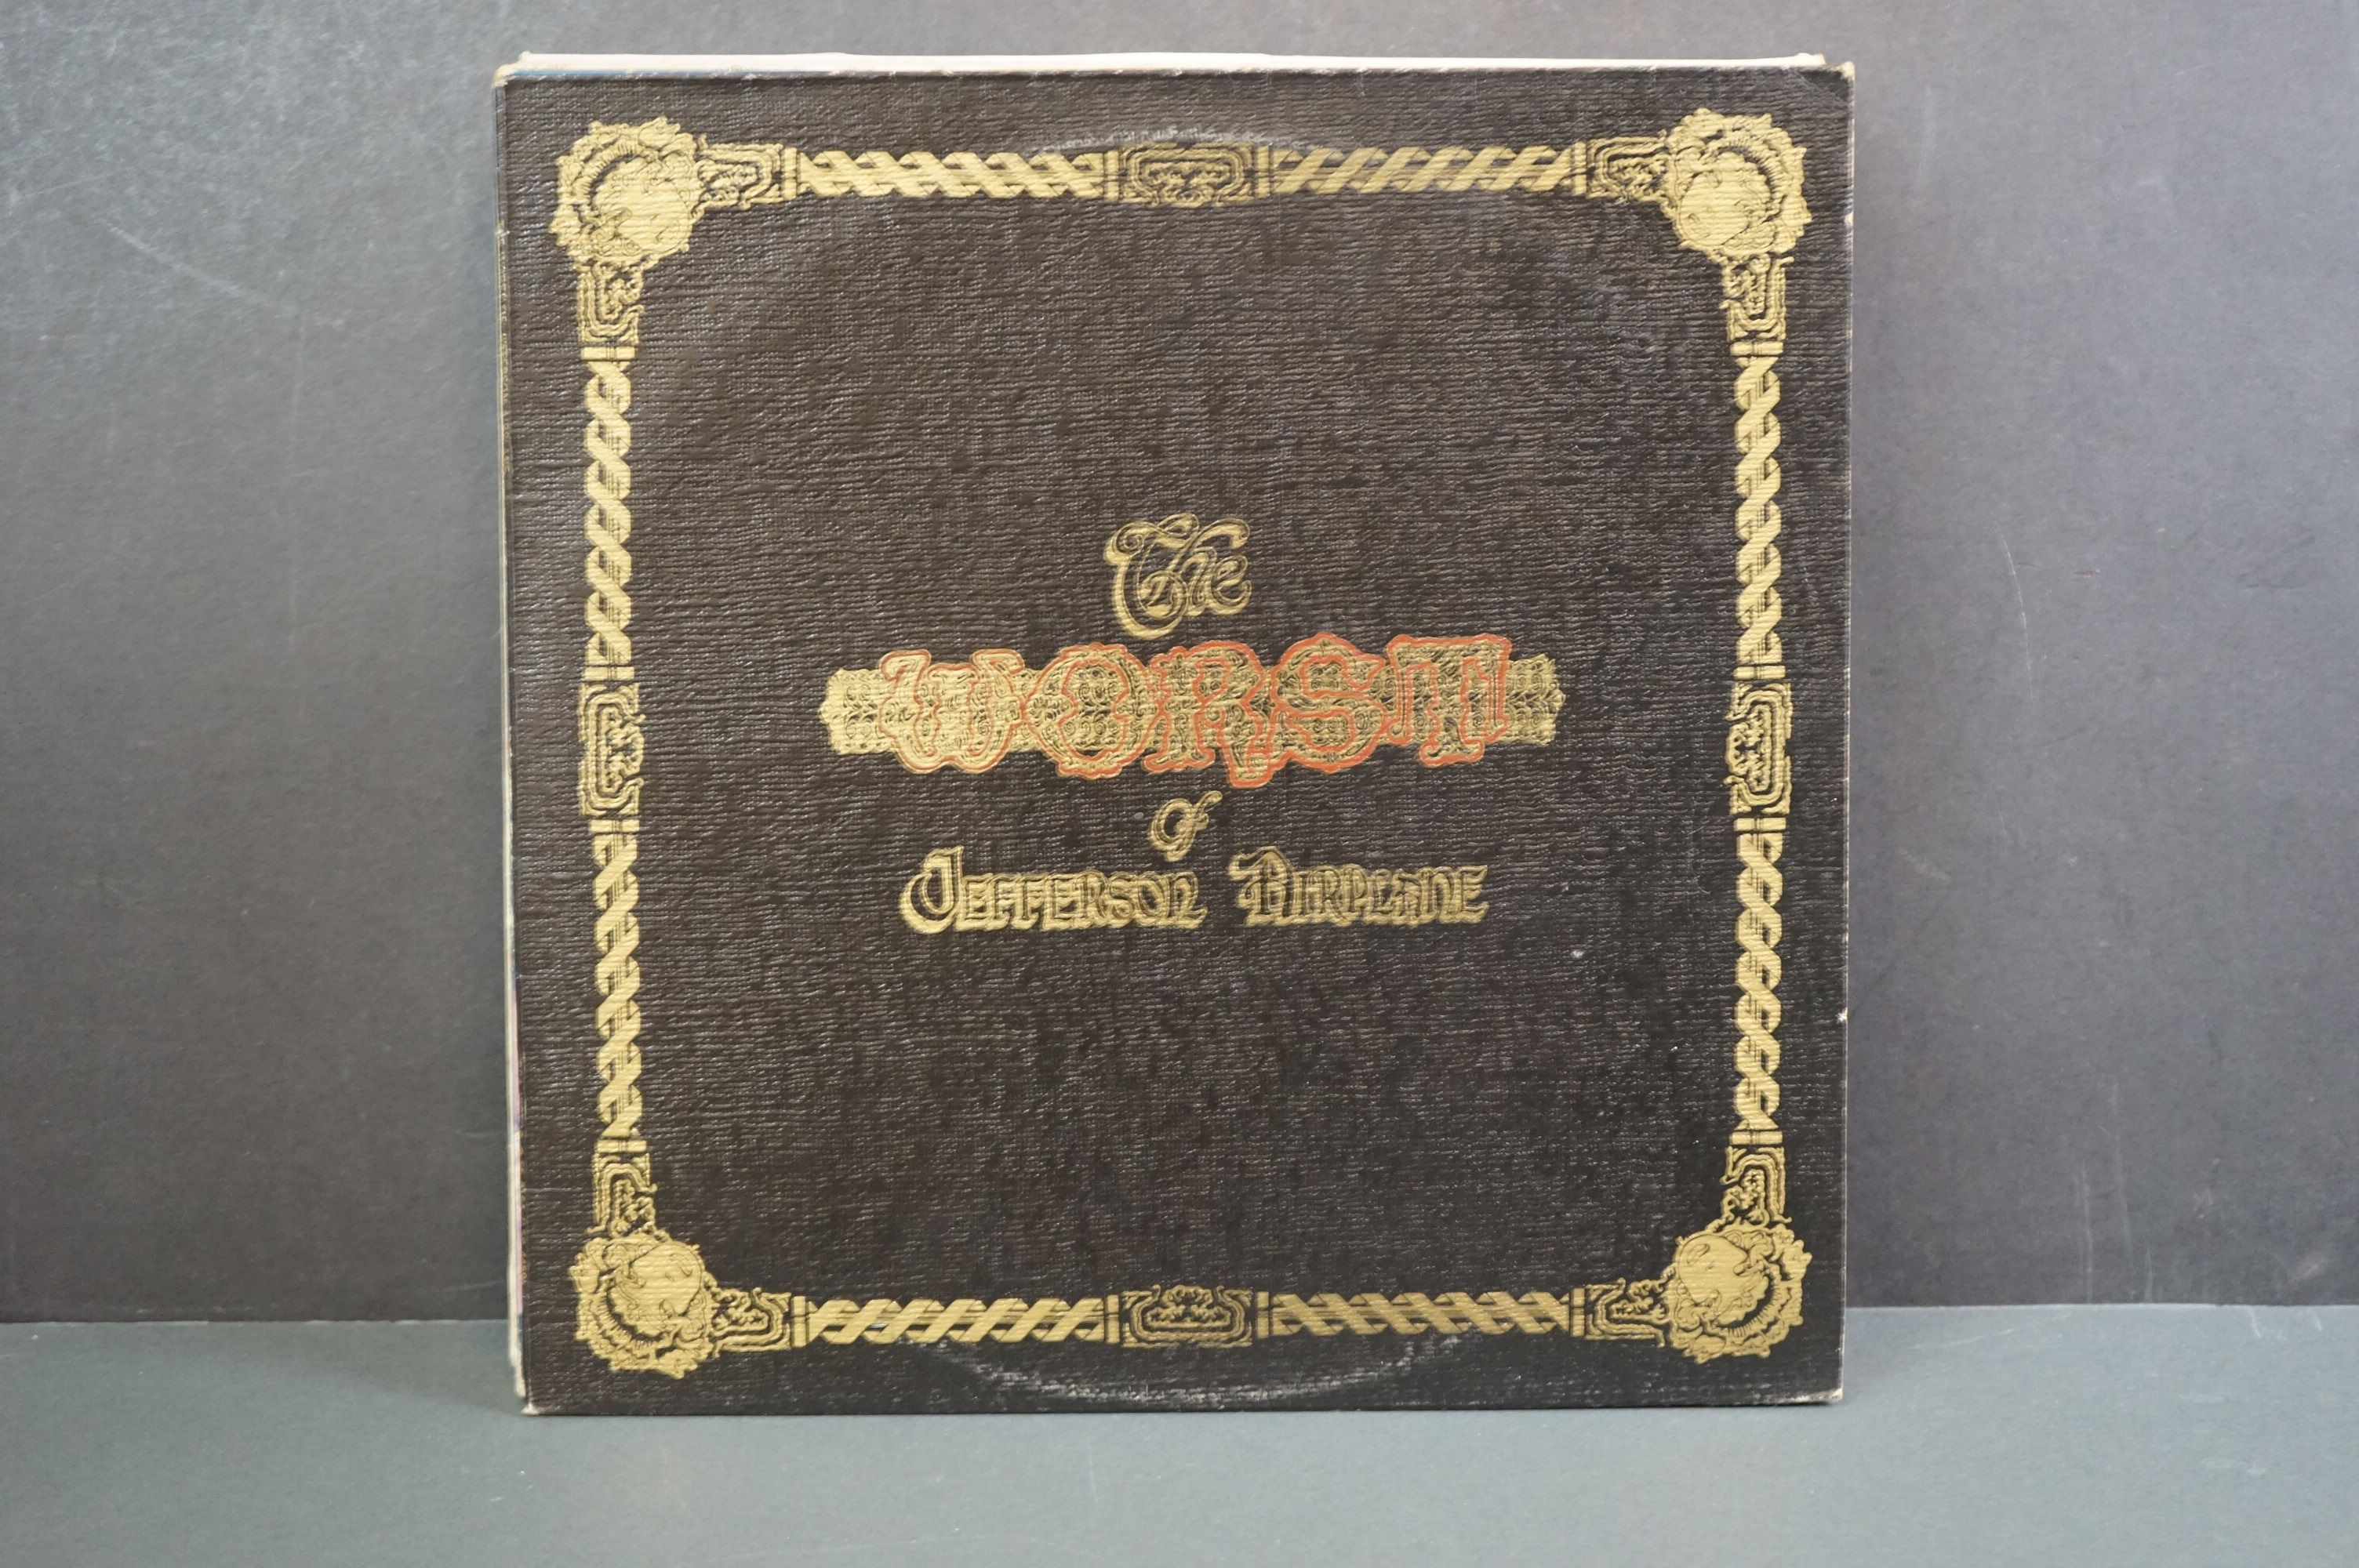 Vinyl - 10 Jefferson Airplane LPs to include Surrealistia Pillow / After Bathing at Baxter's (89301) - Image 2 of 16